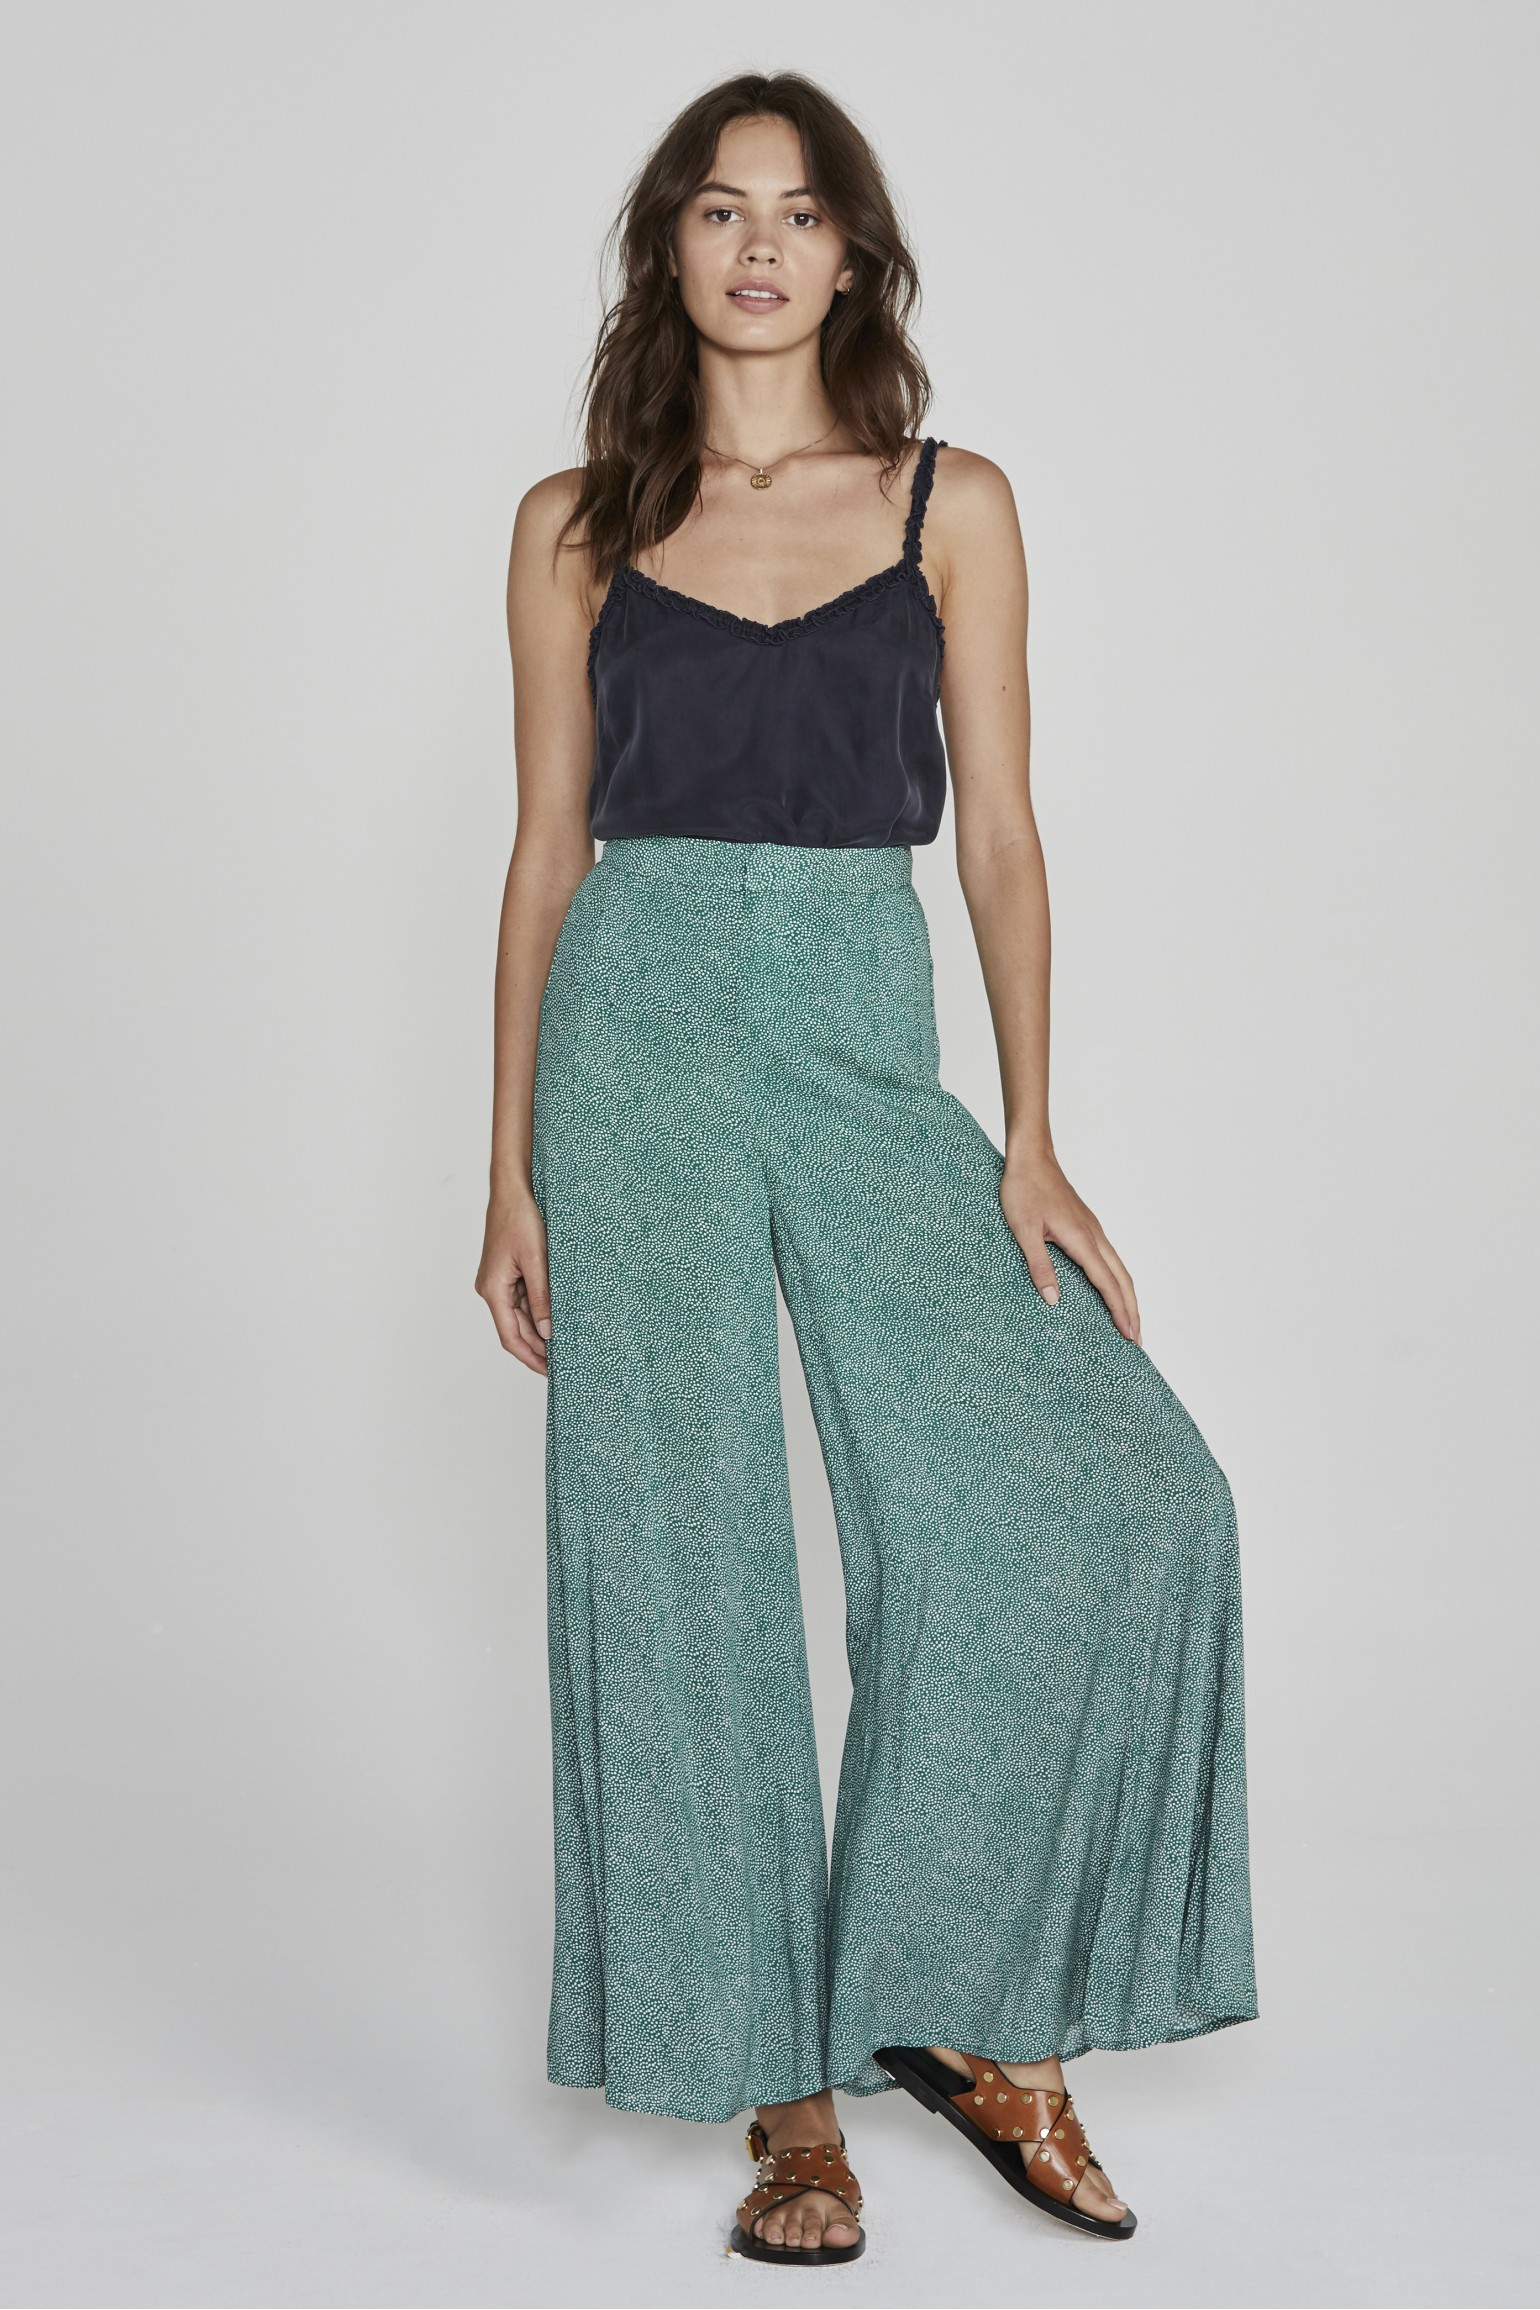 Auguste The Label Diamond Culottes